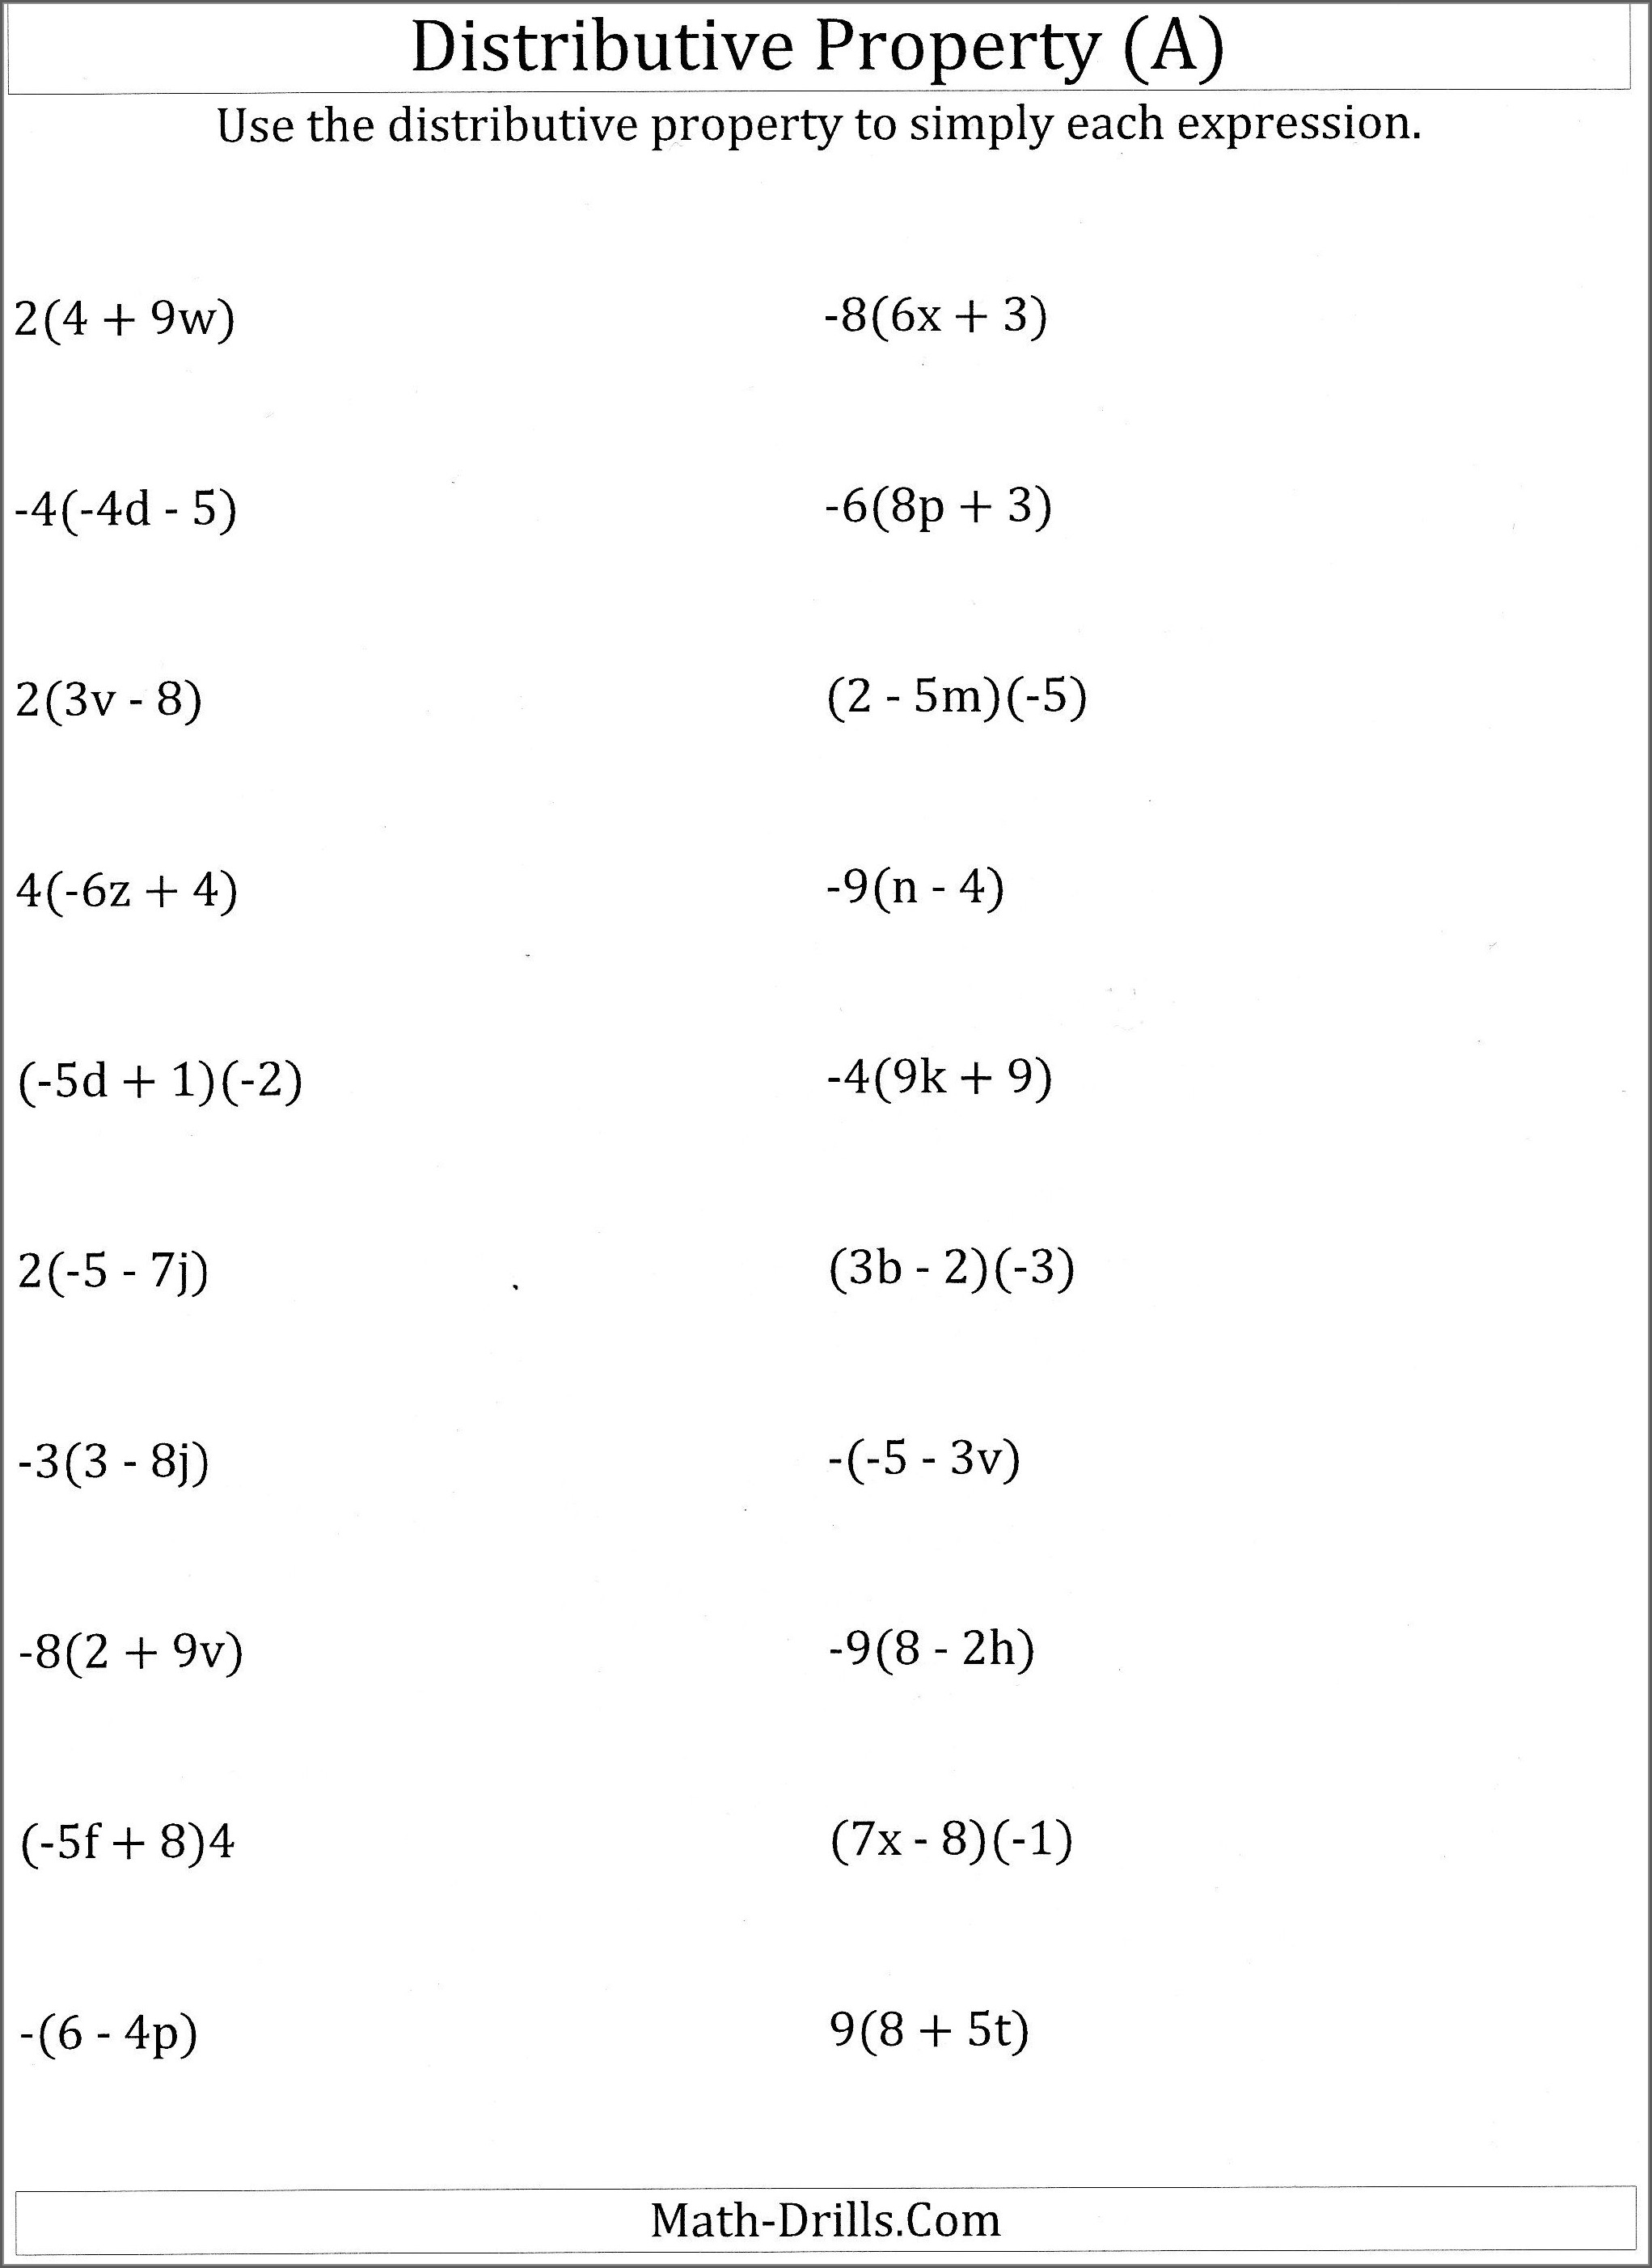 Order Of Operations With Distributive Property Worksheet